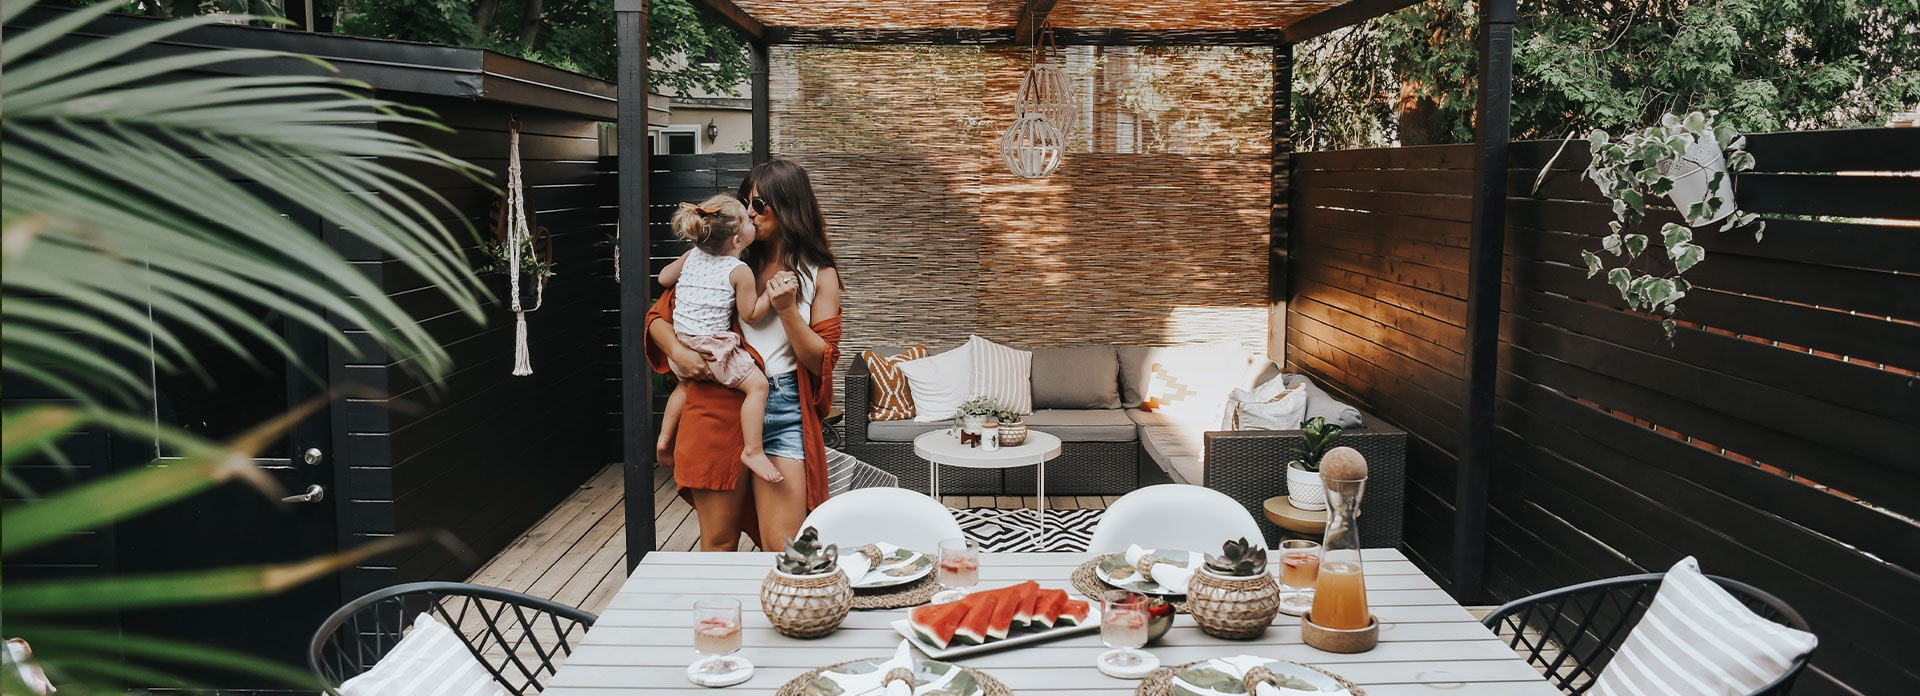 Blogger DanetaB kissing her daughter in her backyard oasis with a summer table set in the foreground.